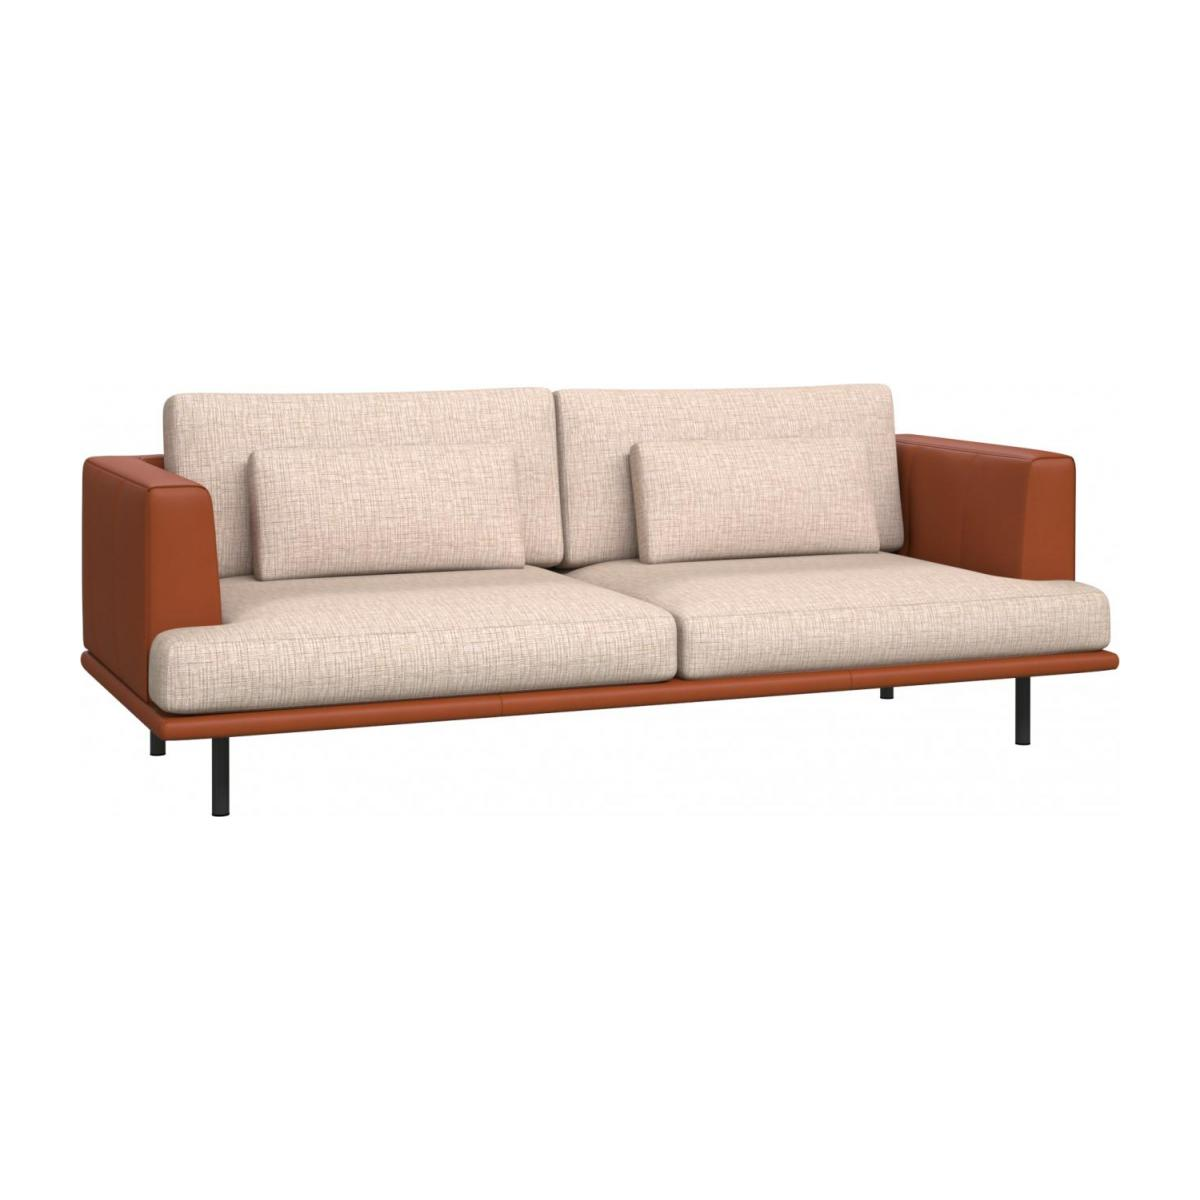 3 seater sofa in Ancio fabric, nature with base and armrests in brown leather n°1